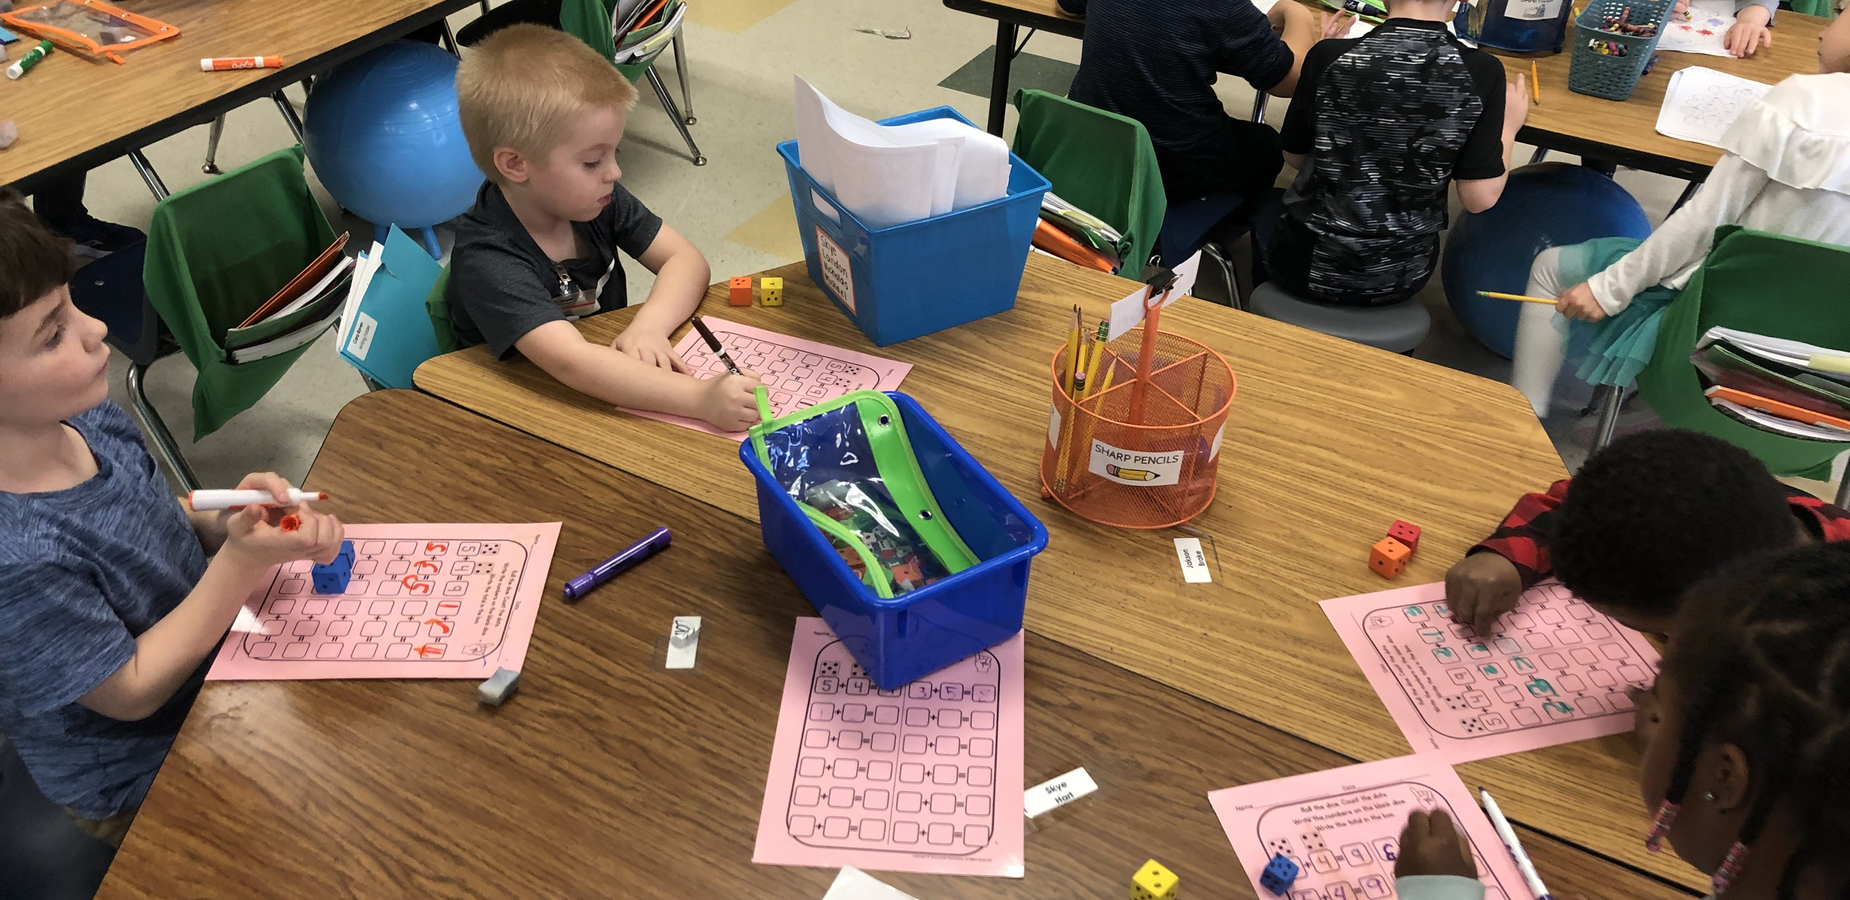 Kindergarten students working at a table